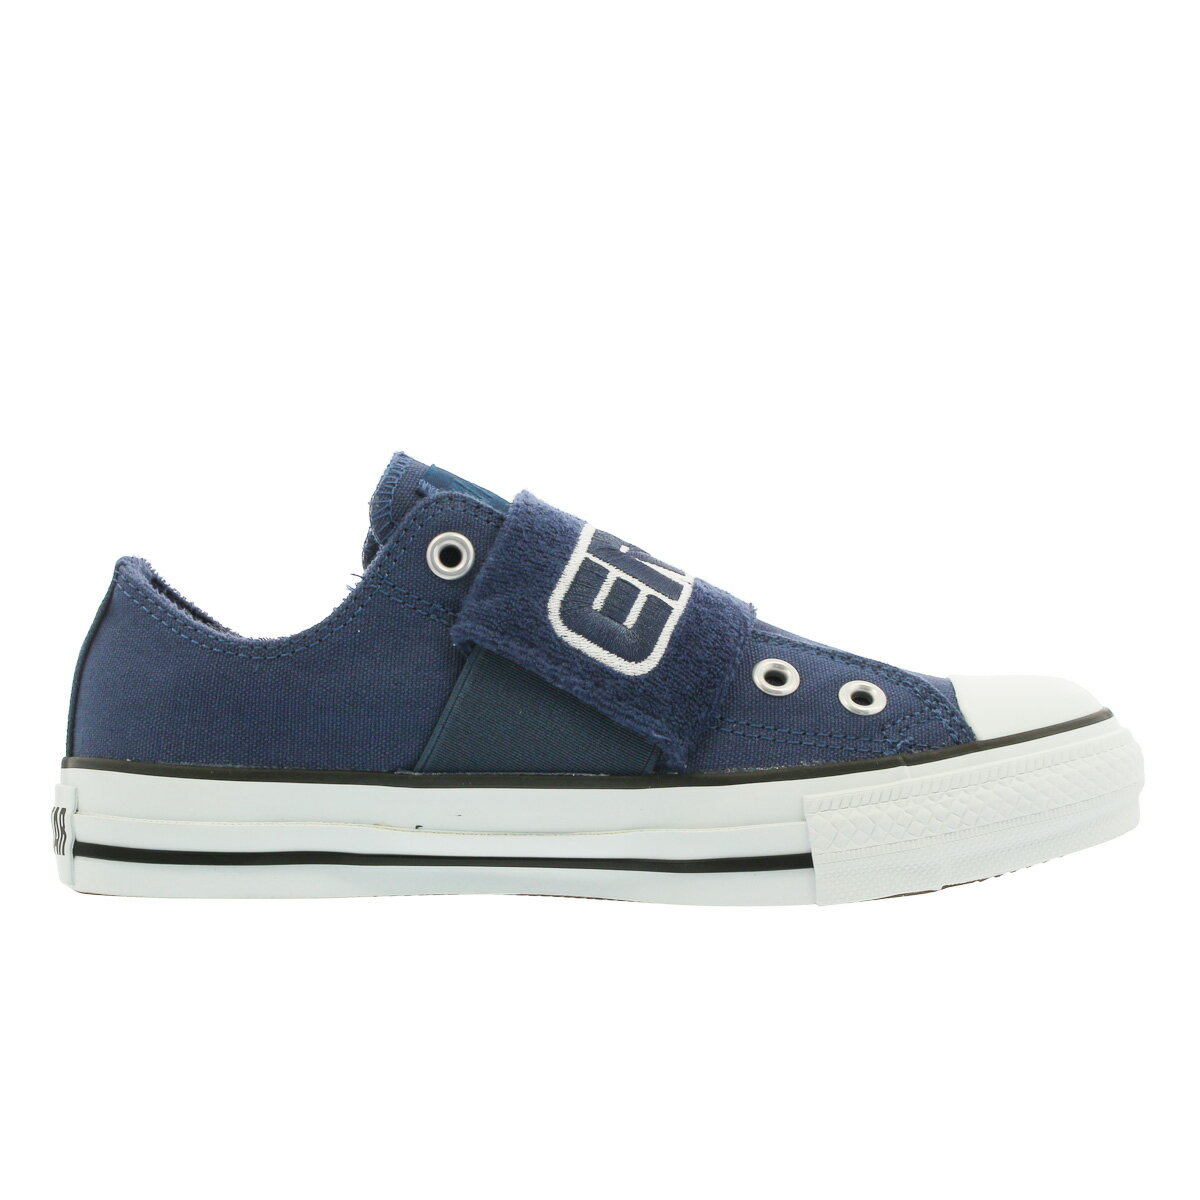 CONVERSE ALL STAR PILEBAND OX Converse all stars pile band OX NAVY 32863255